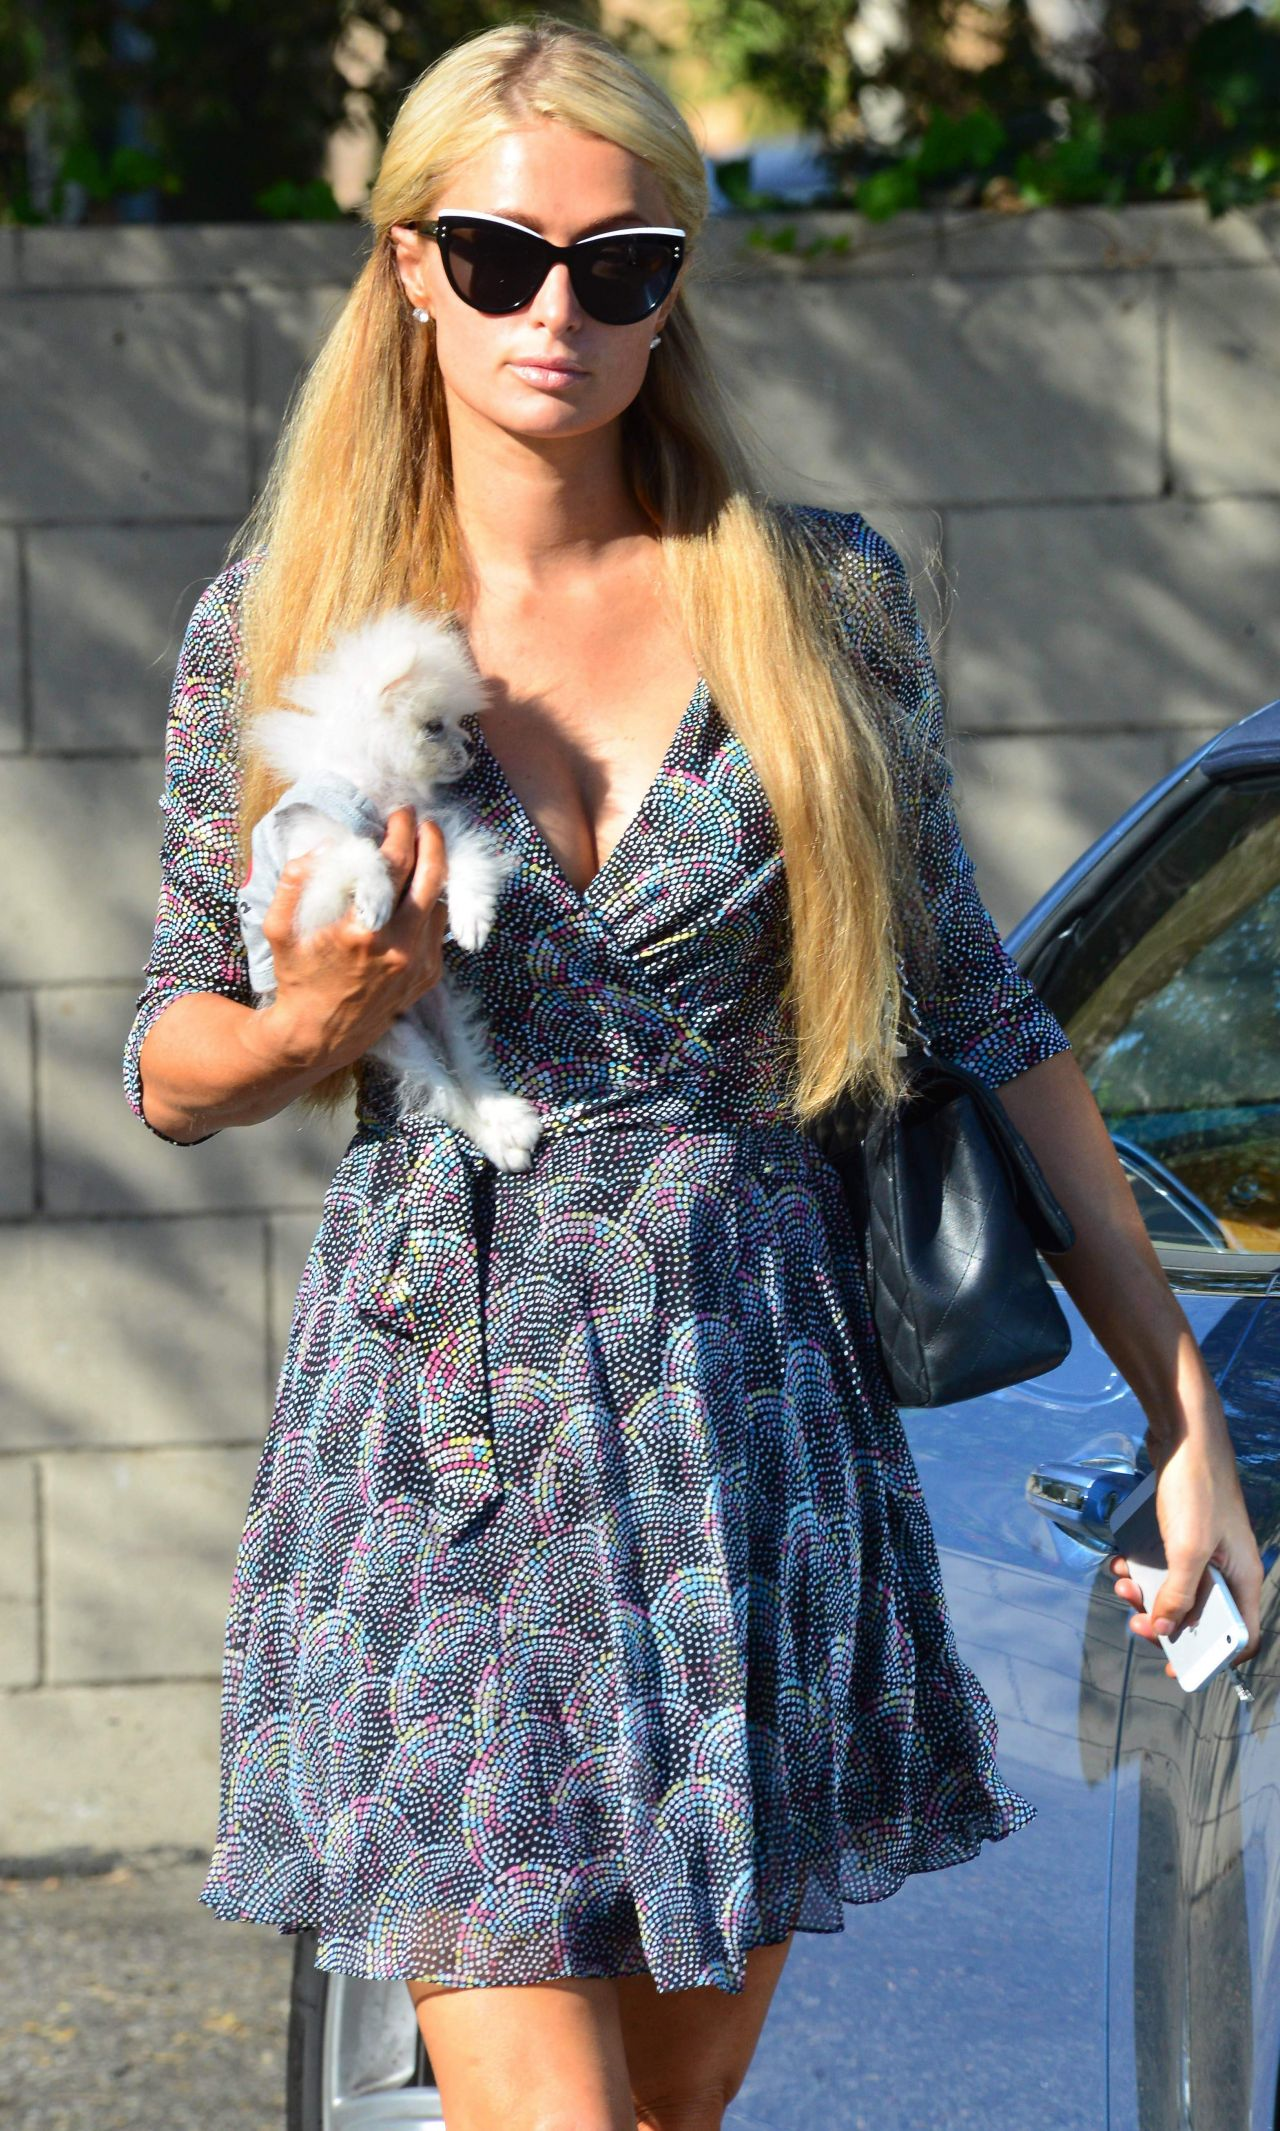 Paris Hilton With Her Dog Prince Hilton - October 2014